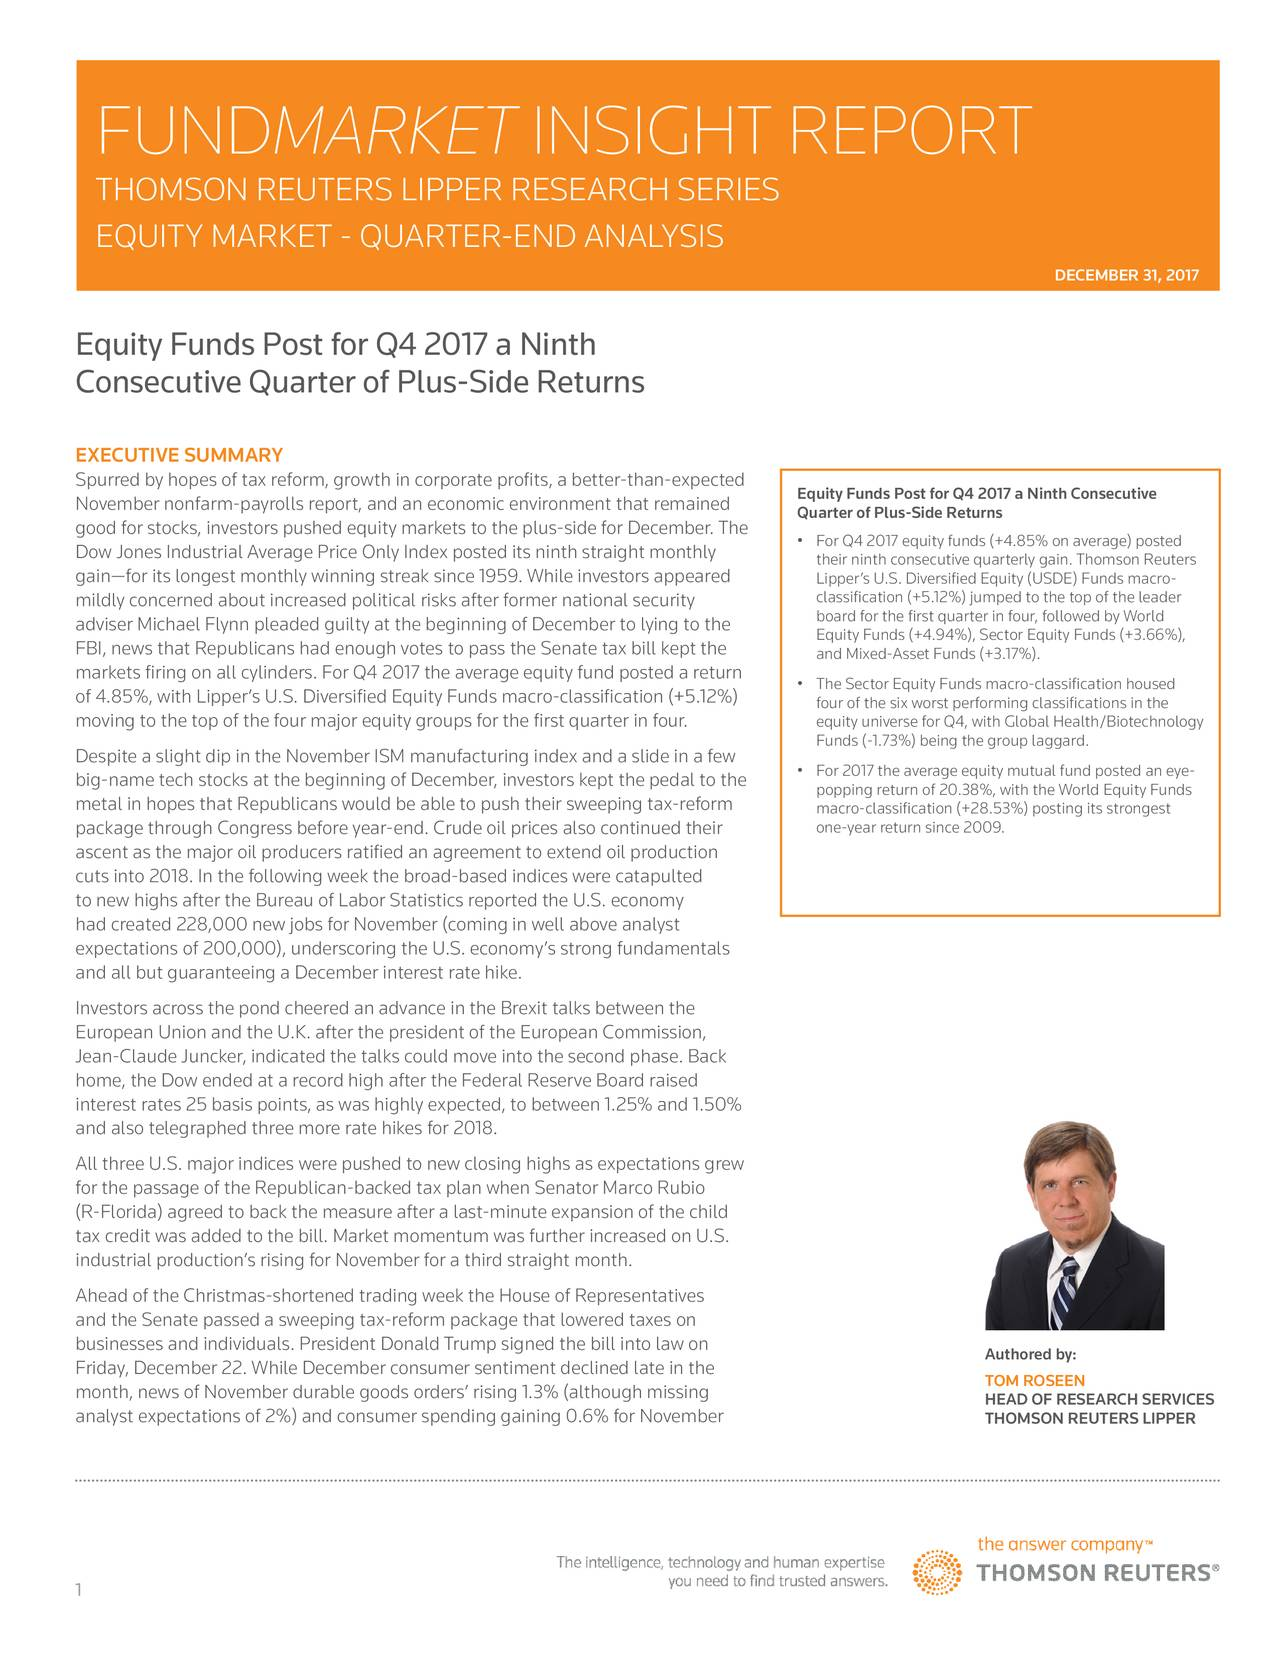 TEXT FOR HEADER THOMSON REUTERS LIPPER RESEARCH SERIES TEXT FOR SUBHEADER EQUITY MARKET - QUARTER-END ANALYSIS DECEMBER 31, 2017 Equity Funds Post for Q4 2017 a Ninth Consecutive Quarter of Plus-Side Returns EXECUTIVE SUMMARY Spurred by hopes of tax reform, growth in corporate profits, a better-than-expEquity Funds Post for Q4 2017 a Ninth Consecutive November nonfarm-payrolls report, and an economic environment that remained Quarter of Plus-Side Returns good for stocks, investors pushed equity markets to the plus-side for December. The Dow Jones Industrial Average Price Only Index posted its ninth straight monthly For Q4 2017 equity funds (+4.85% on average) posted gain—for its longest monthly winning streak since 1959. While investors appearedLipper's U.S. Diversified Equity (USDE) Funds macro-ers classification (+5.12%) jumped to the top of the leader mildly concerned about increased political risks after former national security board for the first quarter in four, followed by World adviser Michael Flynn pleaded guilty at the beginning of December to lying to thEquity Funds (+4.94%), Sector Equity Funds (+3.66%), FBI, news that Republicans had enough votes to pass the Senate tax bill kept theand Mixed-Asset Funds (+3.17%). markets firing on all cylinders. For Q4 2017 the average equity fund posted a • The Sector Equity Funds macro-classification housed of 4.85%, with Lipper's U.S. Diversified Equity Funds macro-classification (+5.1four of the six worst performing classifications in the moving to the top of the four major equity groups for the first quarter in four.equity universe for Q4, with Global Health/Biotechnology Funds (-1.73%) being the group laggard. Despite a slight dip in the November ISM manufacturing index and a slide in a few big-name tech stocks at the beginning of December, investors kept the pedal to tpopping return of 20.38%, with the World Equity Funds- metal in hopes that Republicans would be able to push their sweeping tax-reform macro-class